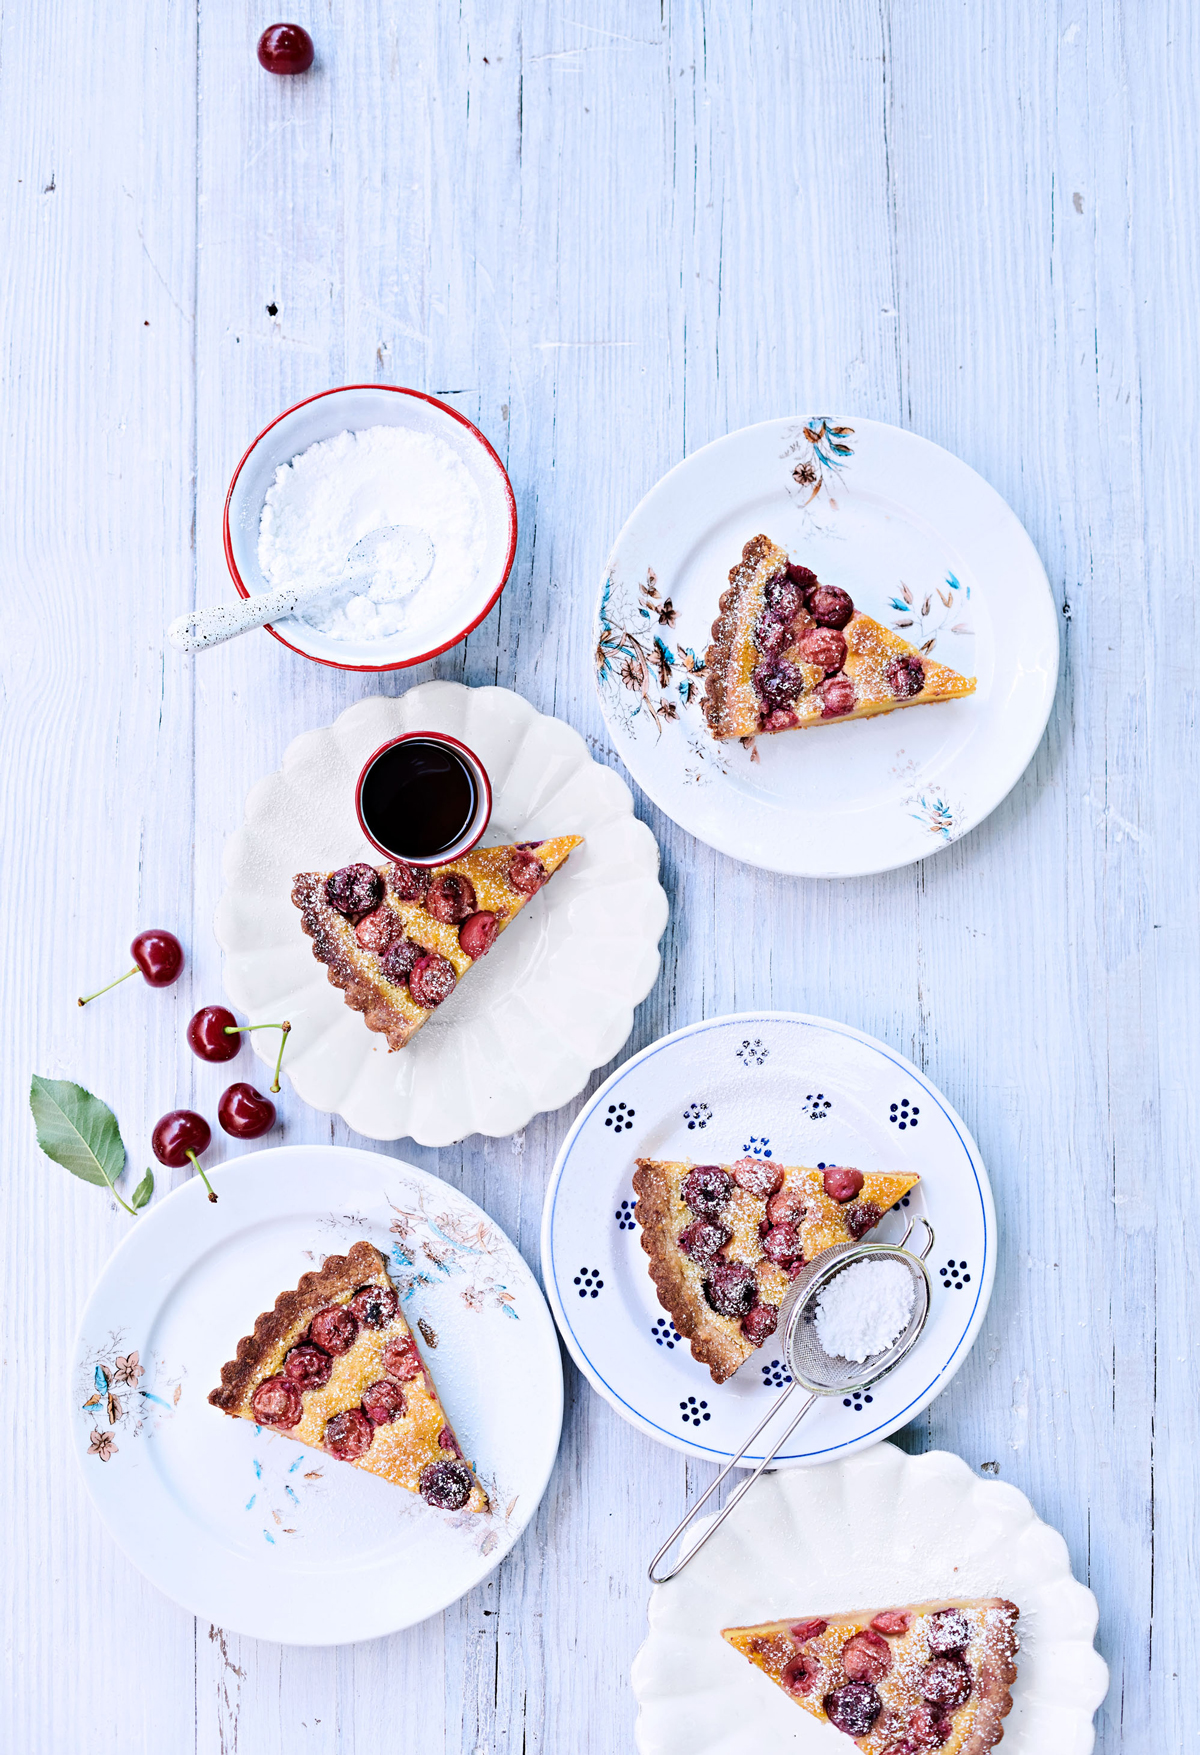 sour-cherry frangipane tart topped with powdered sugar